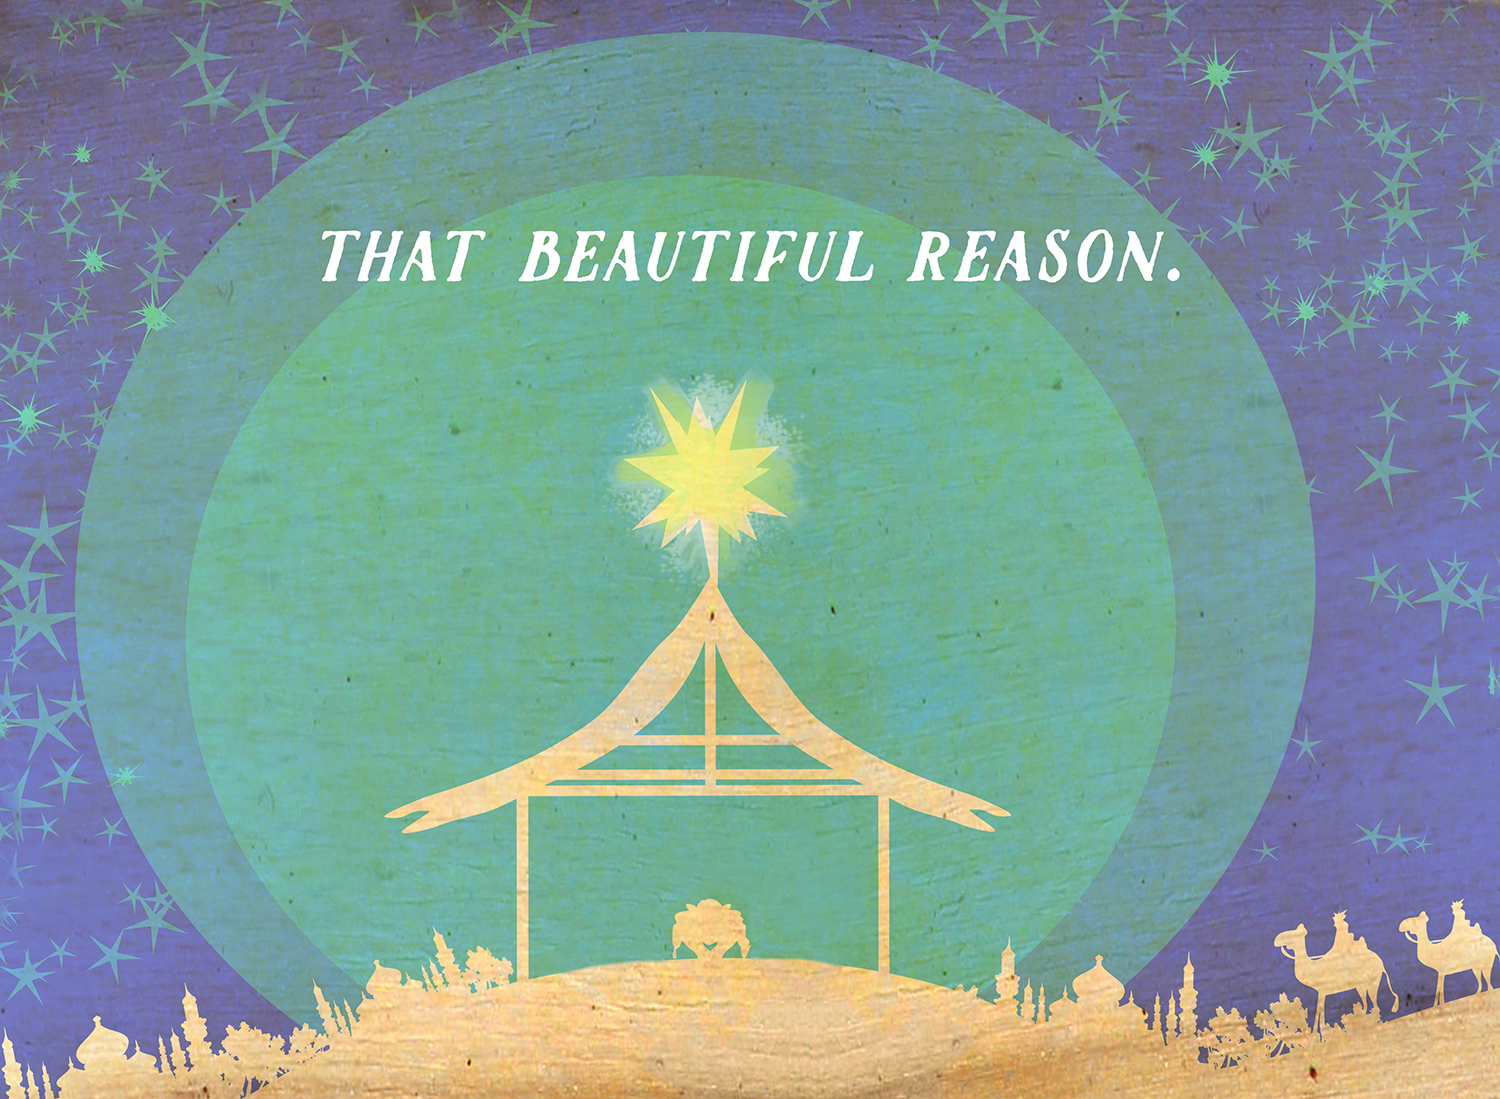 That beautiful reason